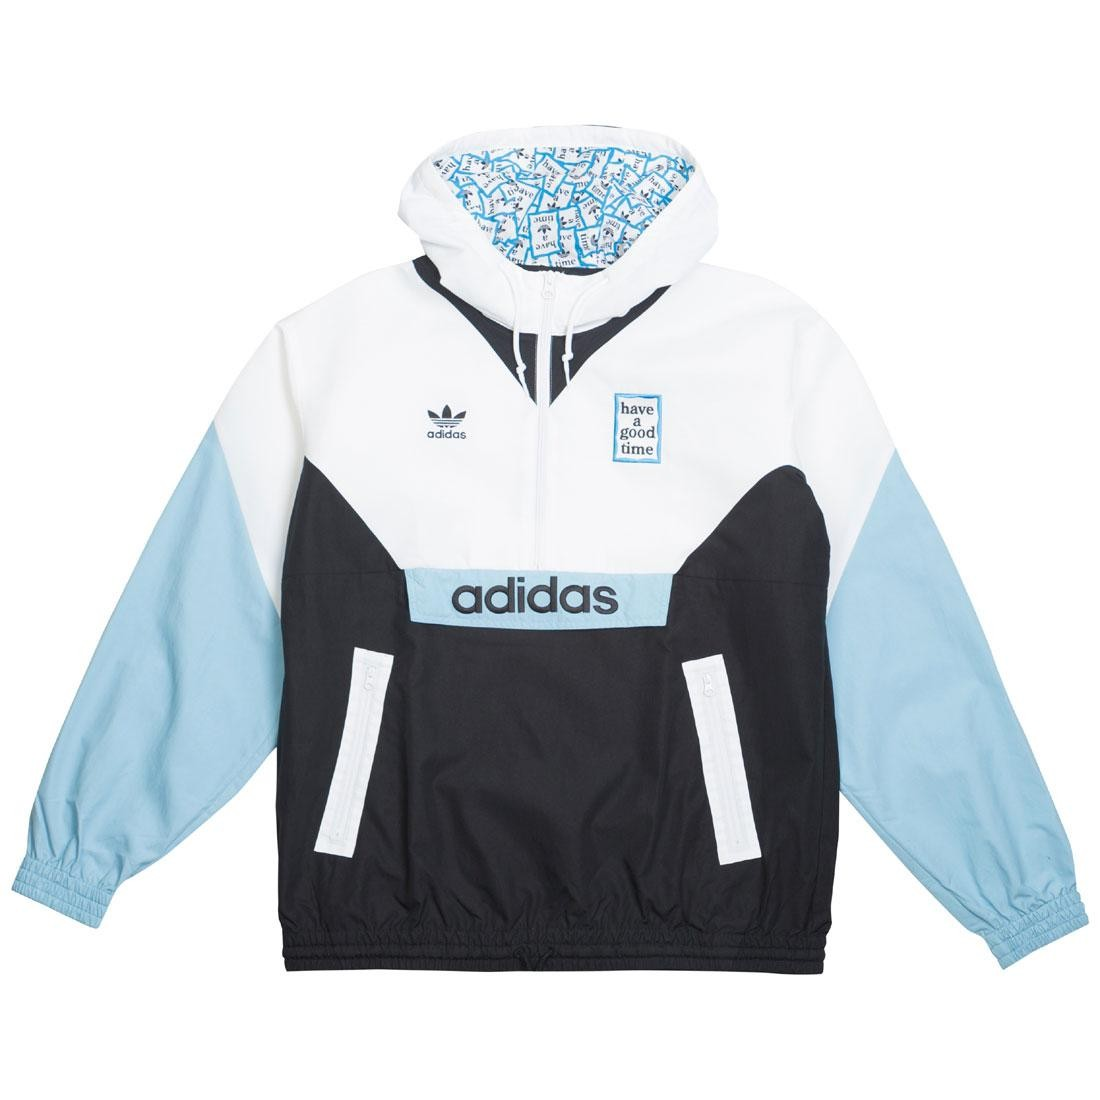 Adidas x Have A Good Time Men Pullover Windbreaker Jacket (white black clear blue)